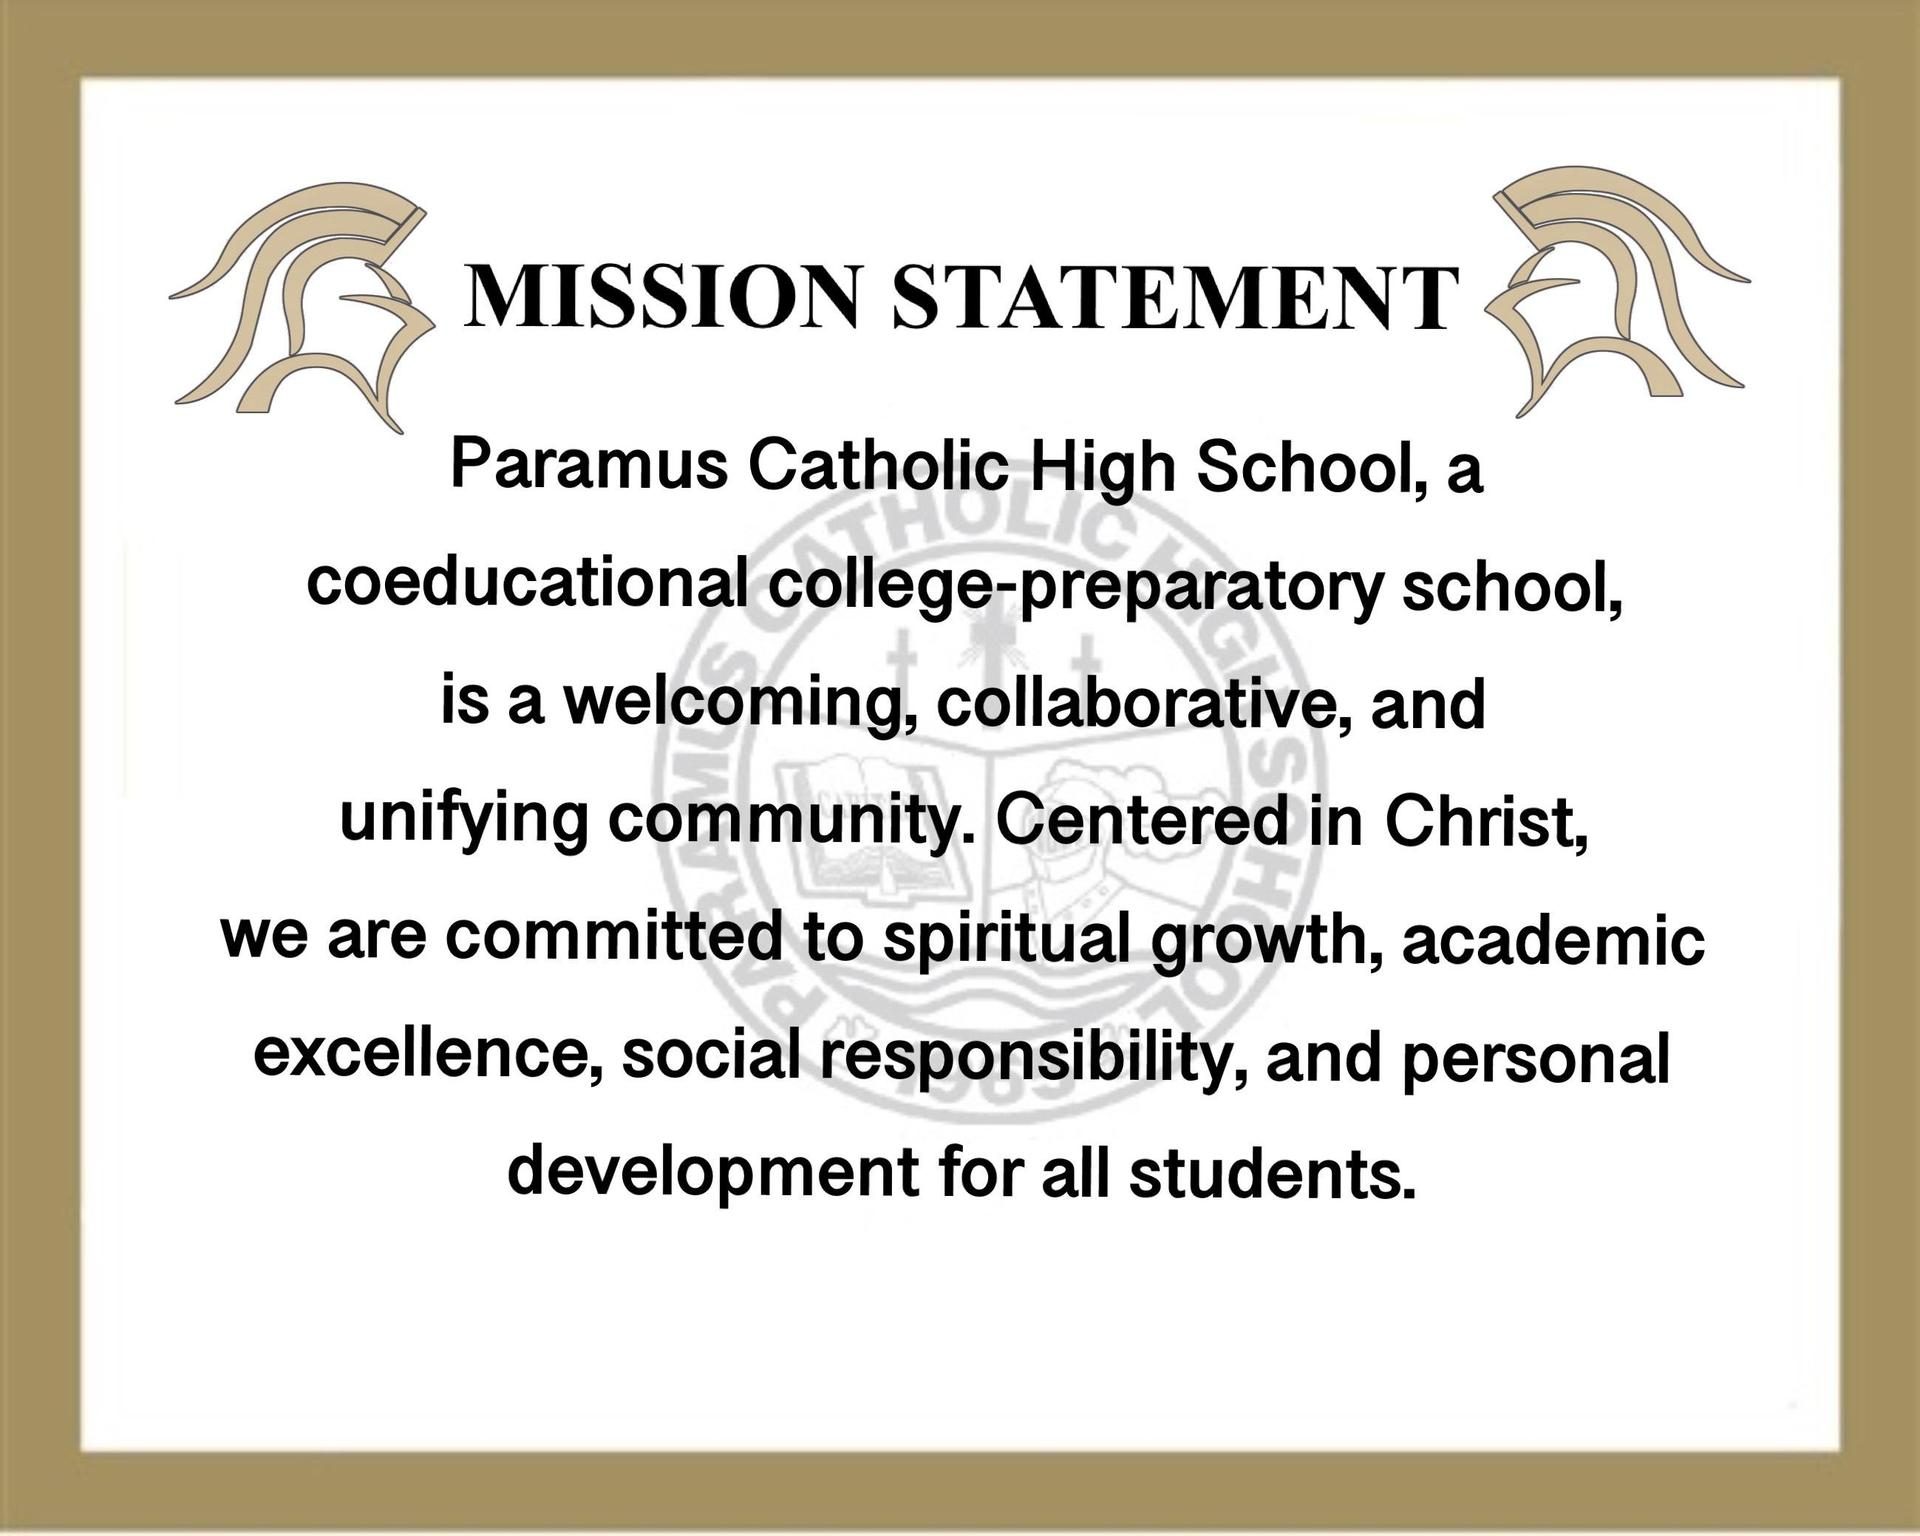 Paramus Catholic Missions Statement